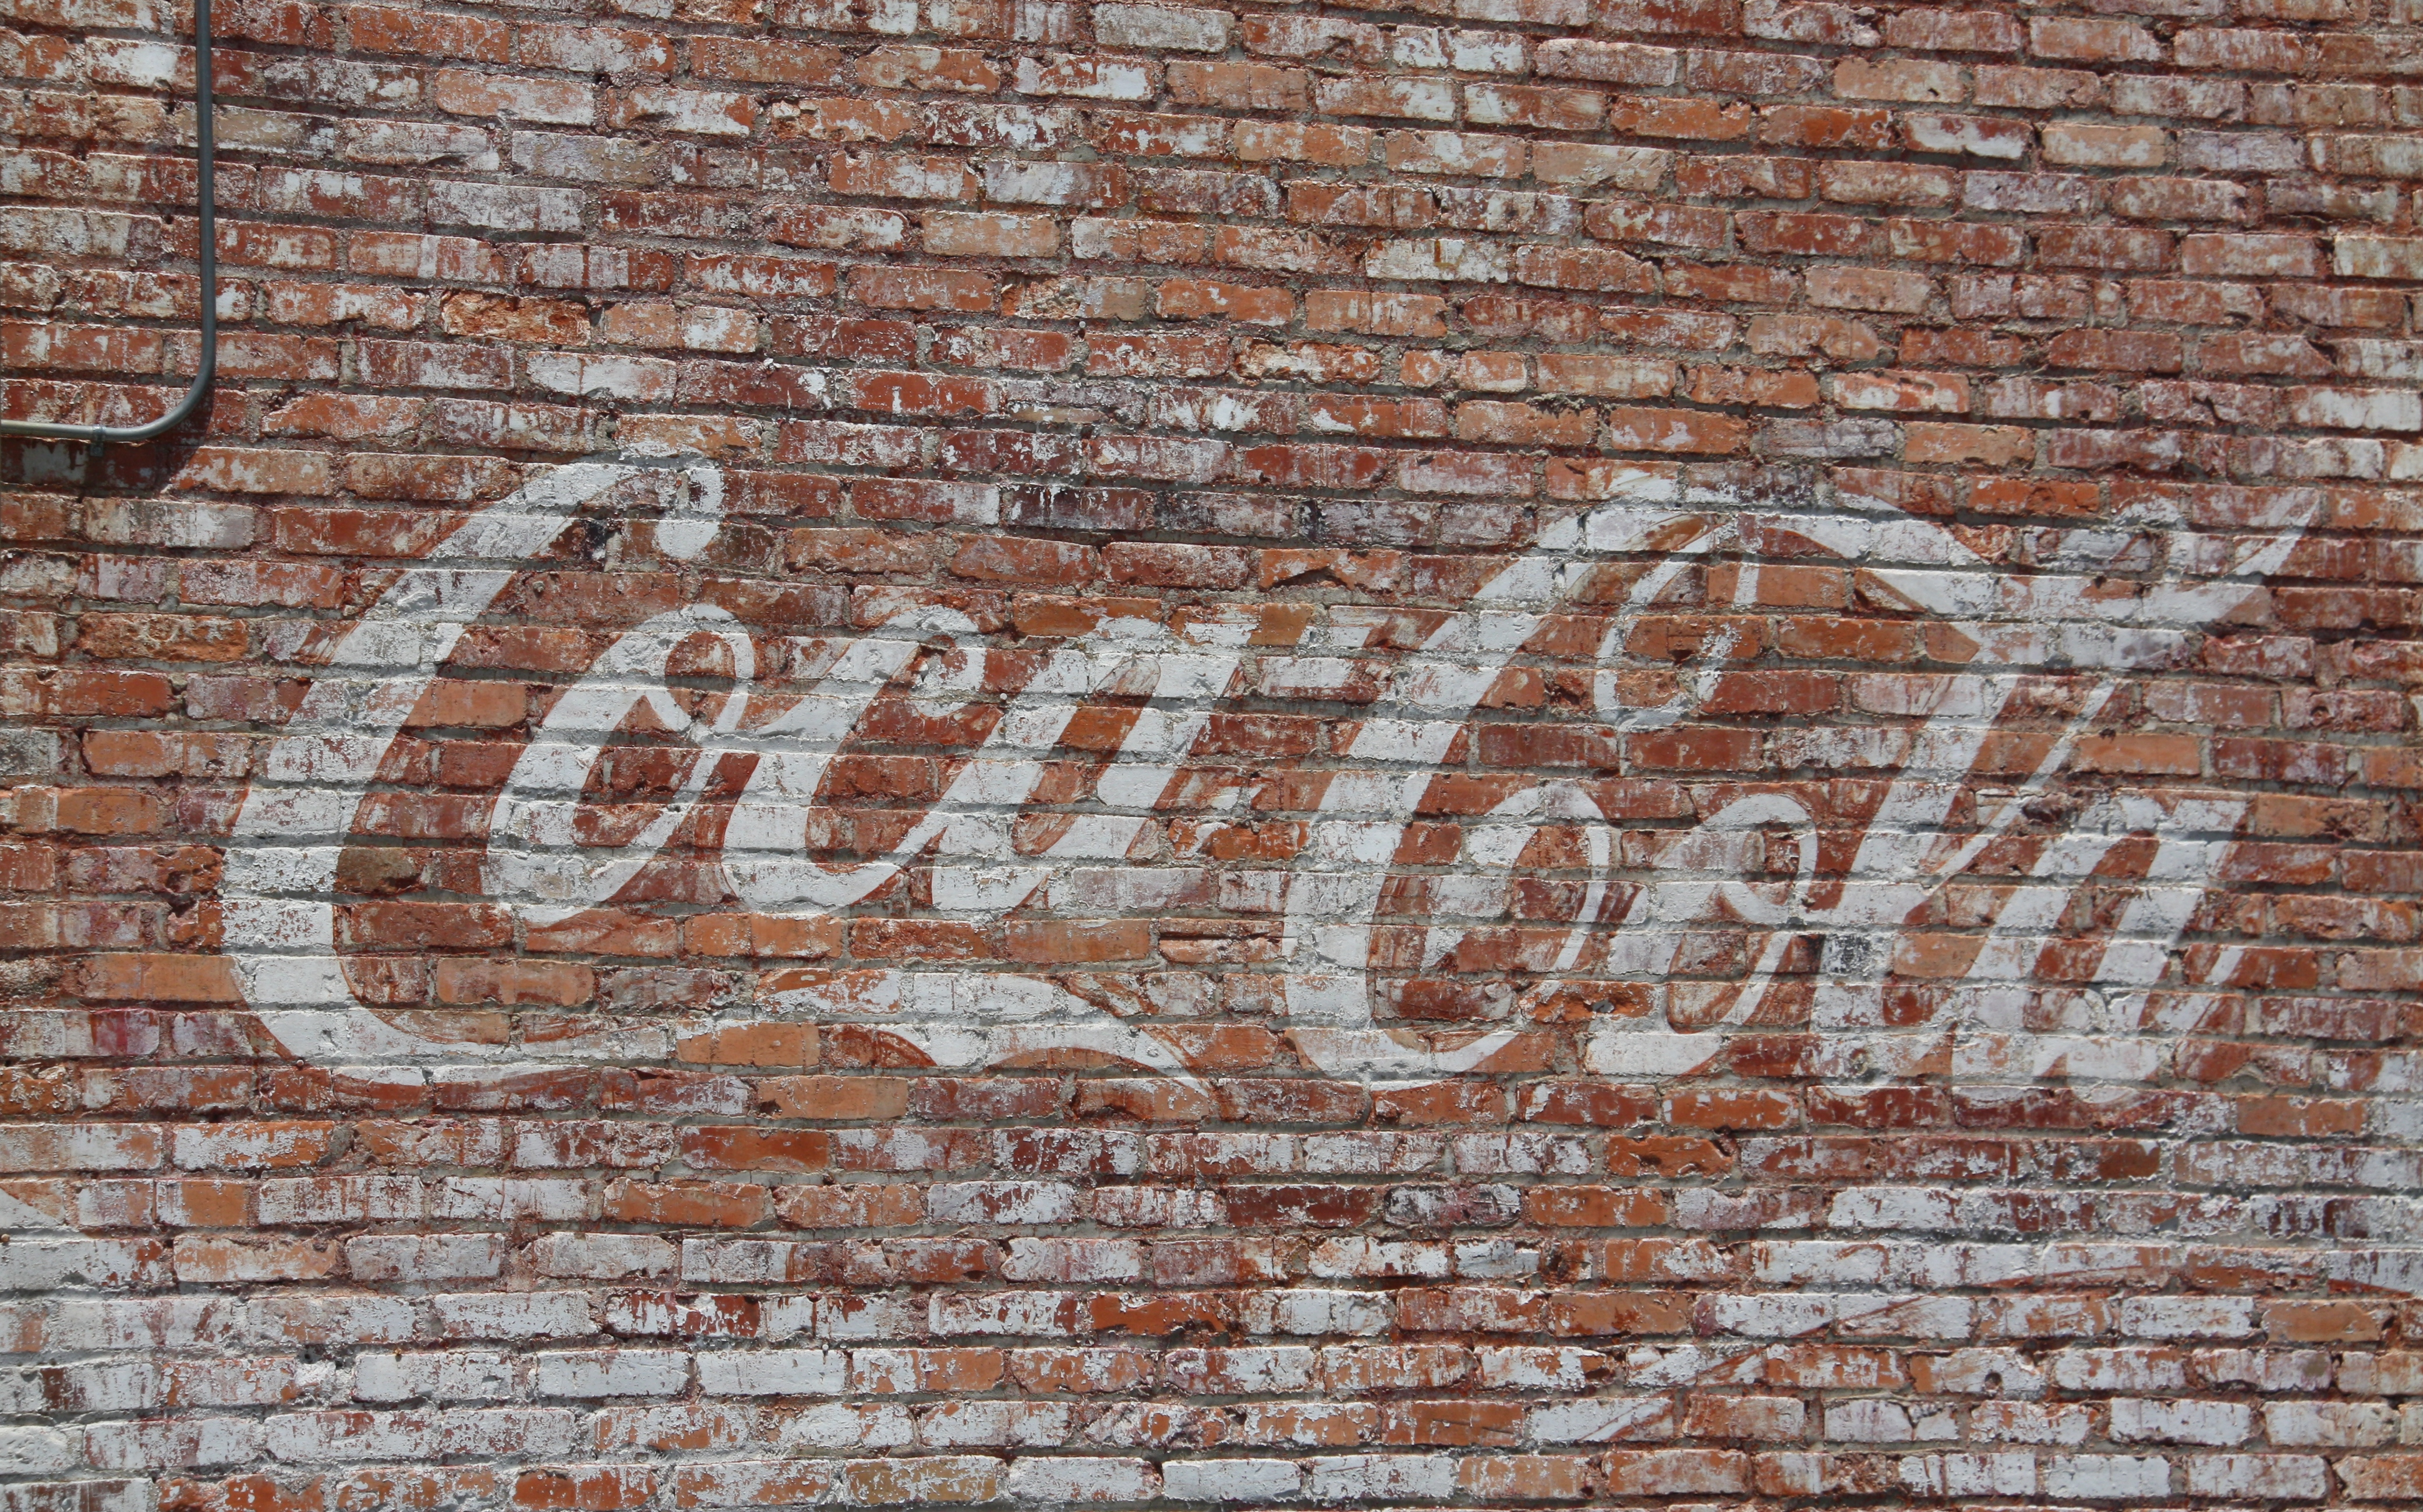 Coca-Cola-wall-NC-Love-this-faded-Coca-Cola-logo-painted-on-this-old-brick-wall-wallpaper-wp5603952